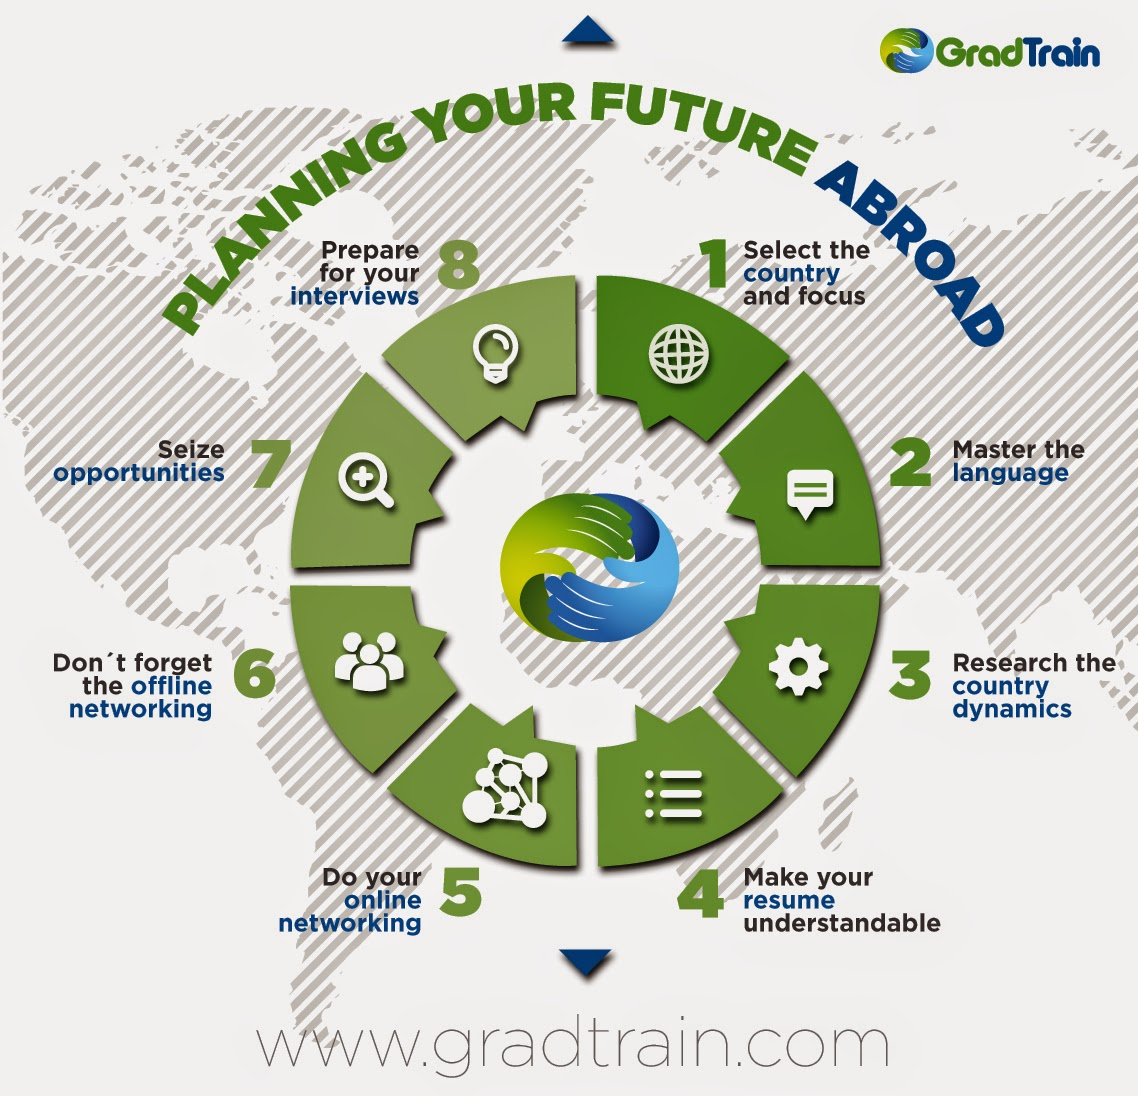 steps to finding your dream job abroad the gradtrain blog all fit interview preparation ability to effectively handle a case interview demonstrating analytical skills business sense or time management